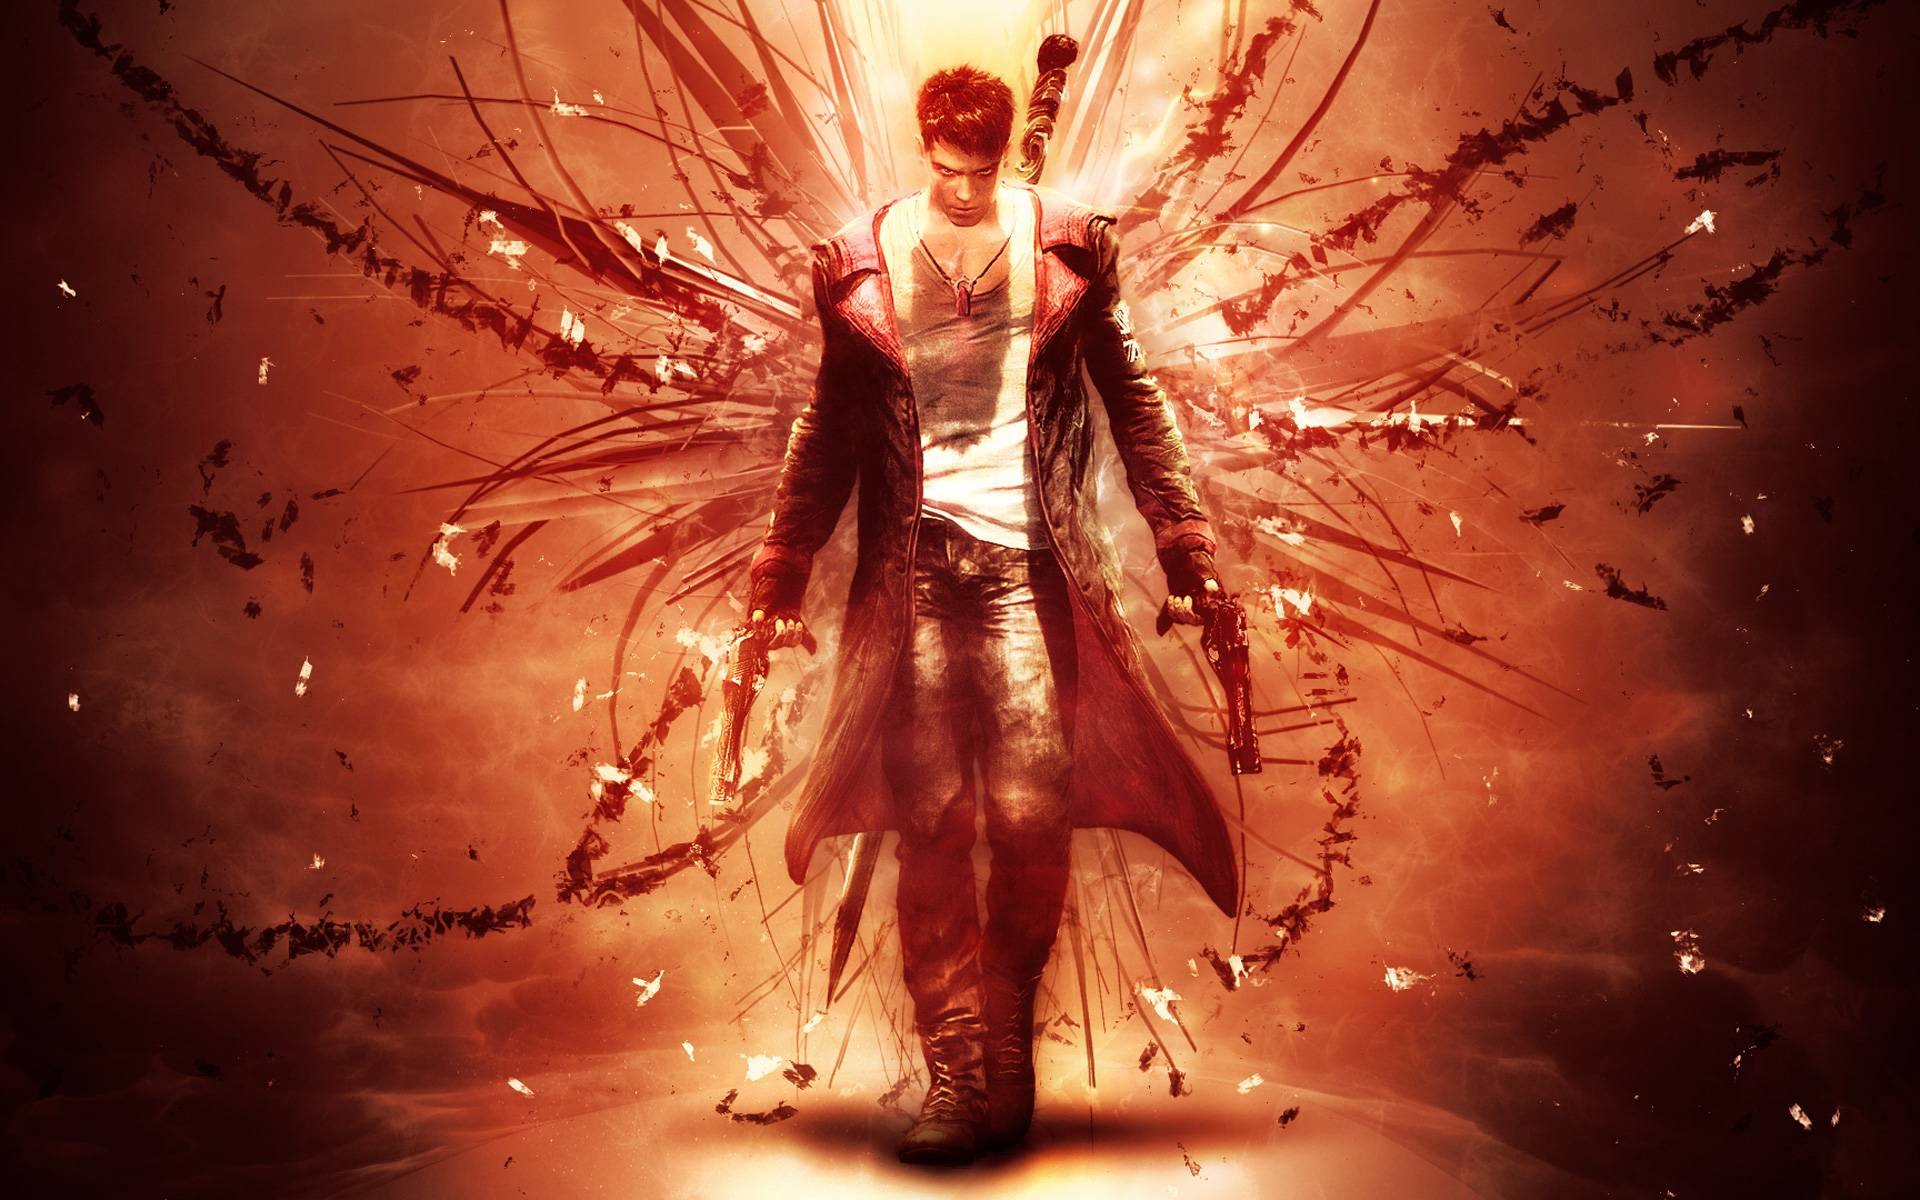 Dmc devil may cry wallpapers in hd gamingbolt video game news dmc devil may cry wallpapers in hd voltagebd Images